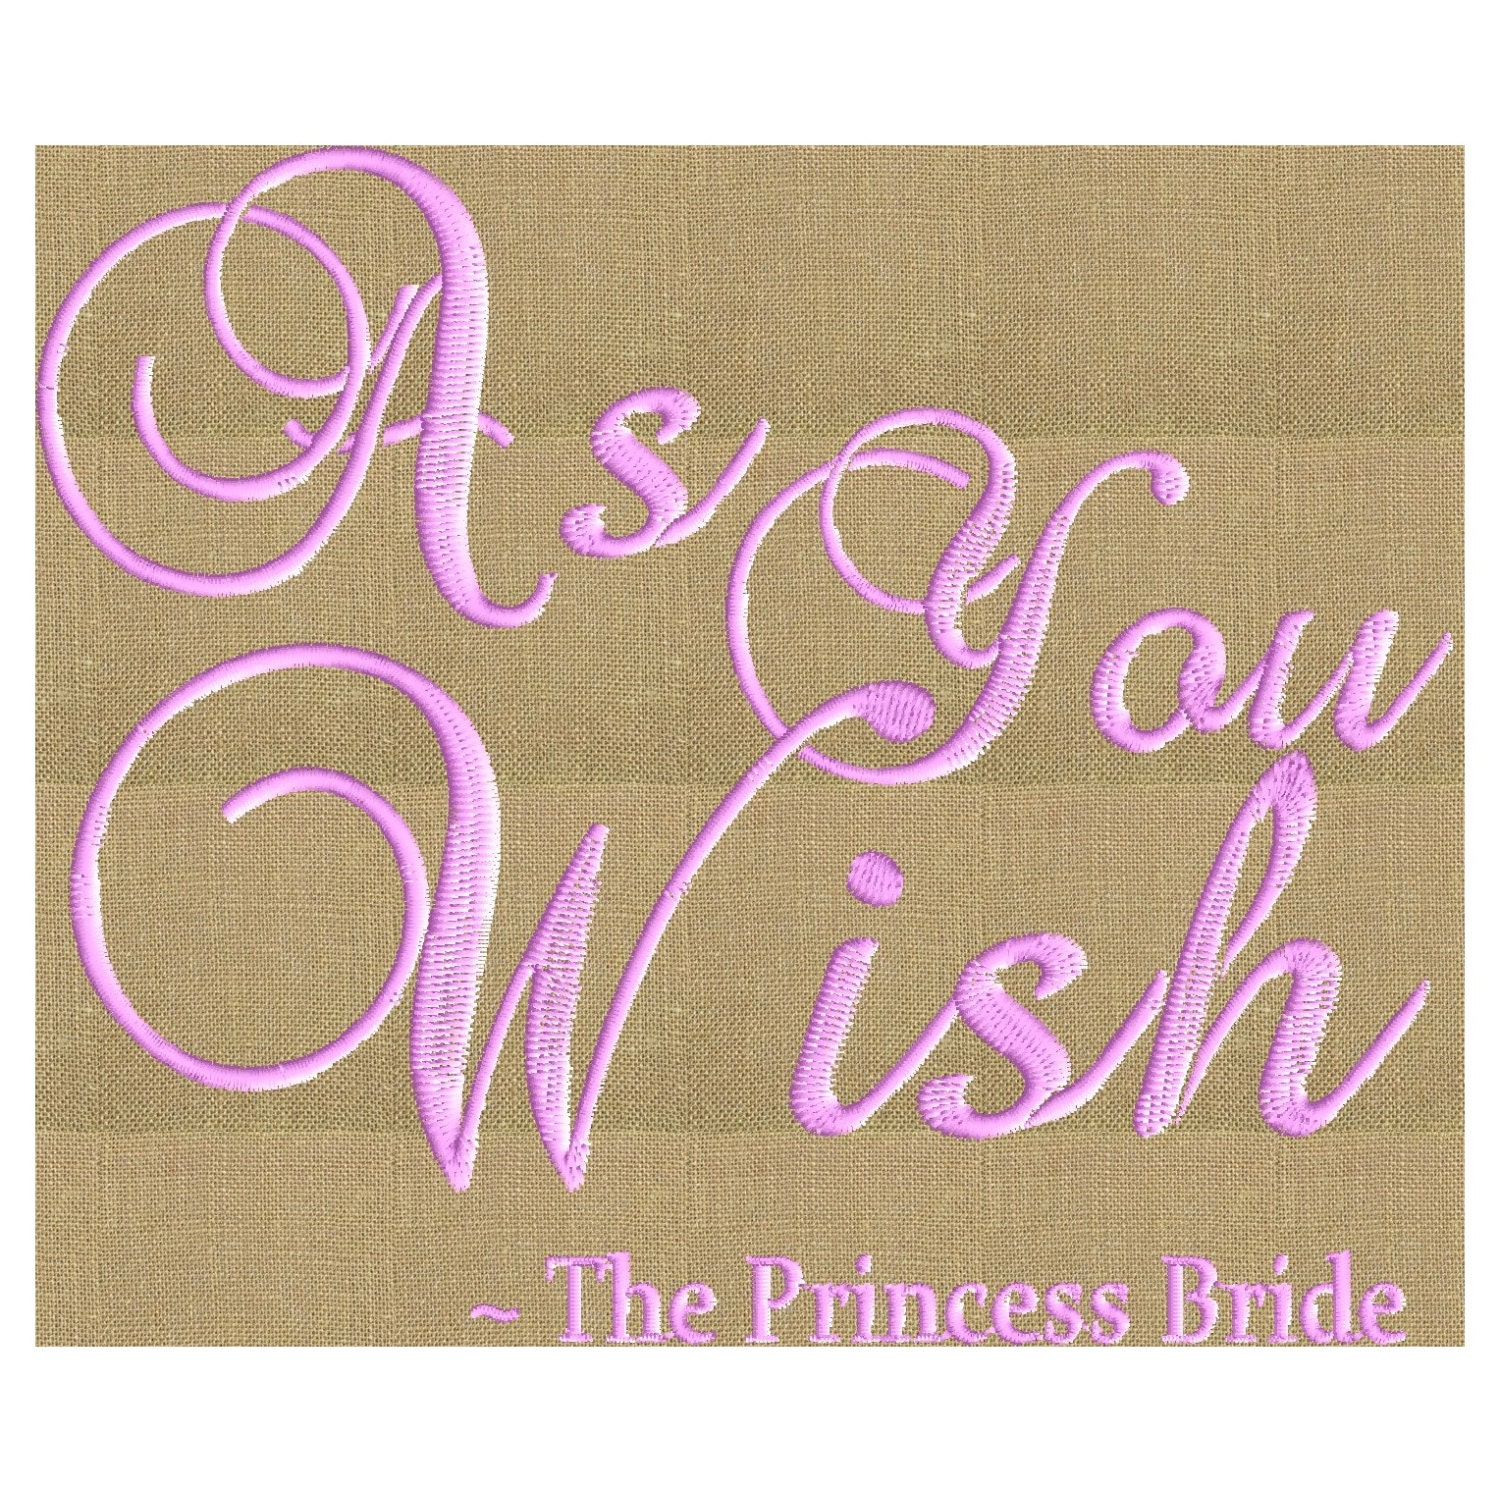 Princess bride quote quot as you wish embroidery design file